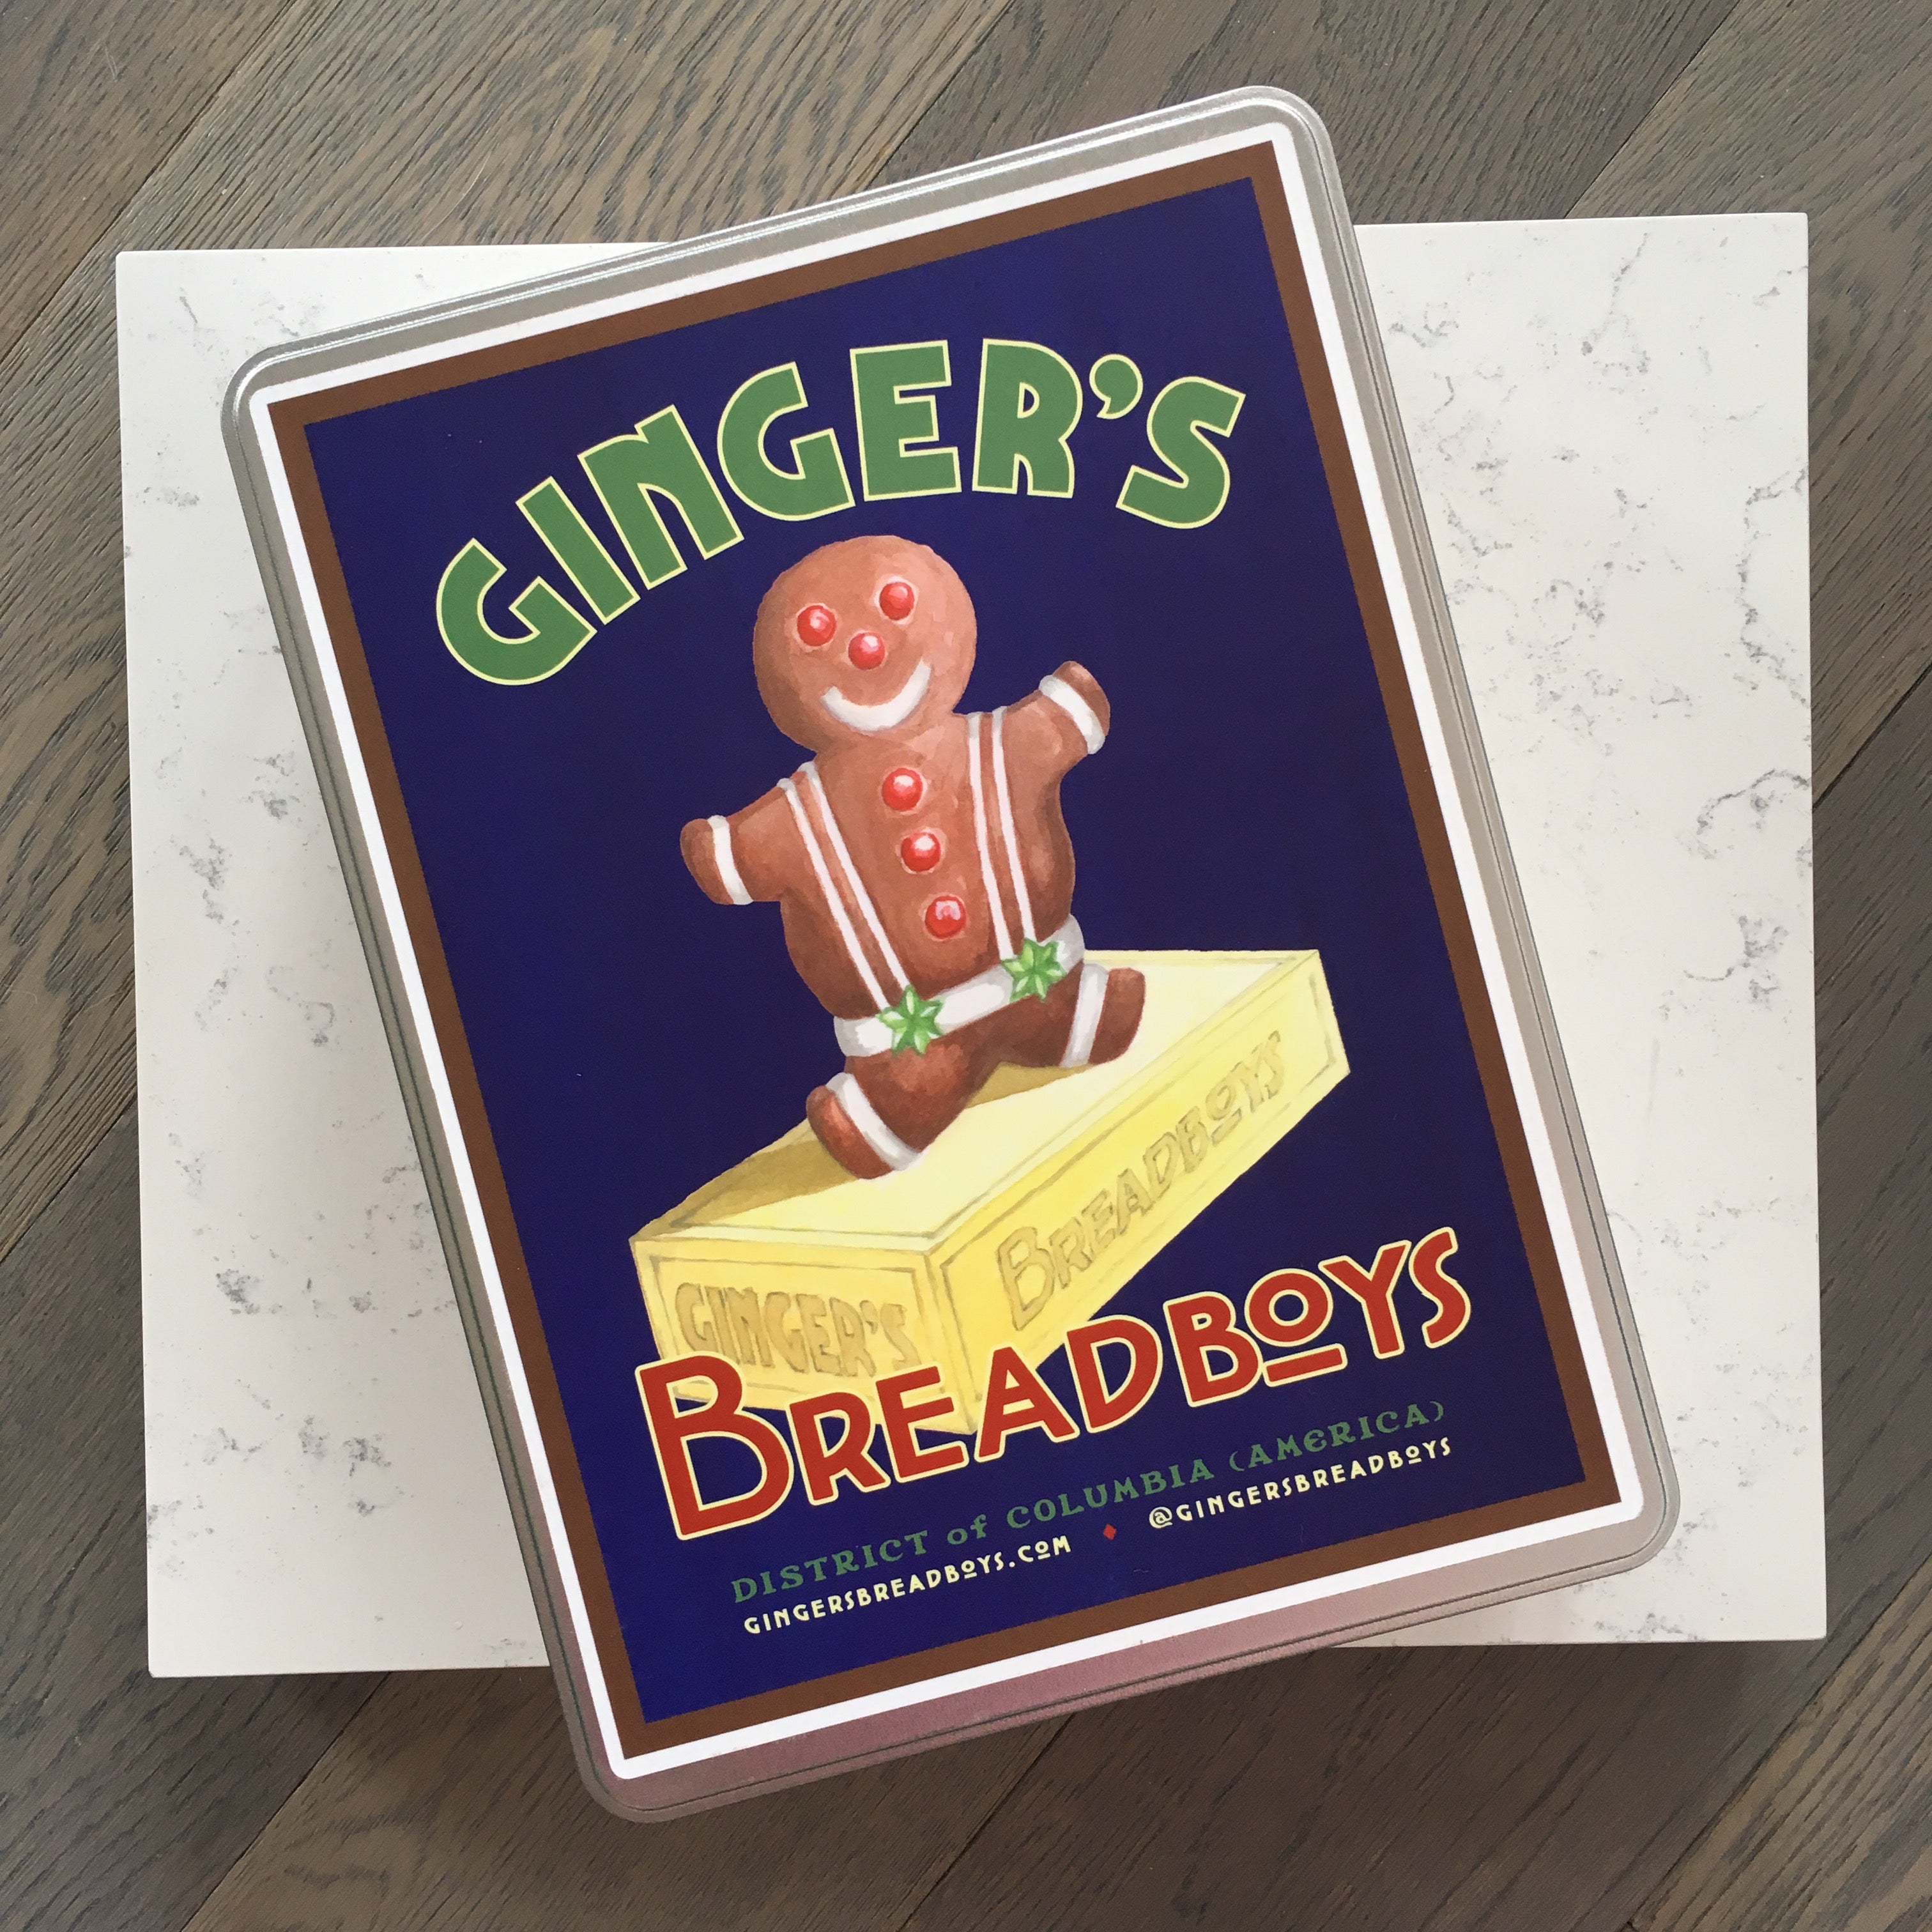 Delicious gingerbread boy cookies with the Ginger's Breadboys baking kit.